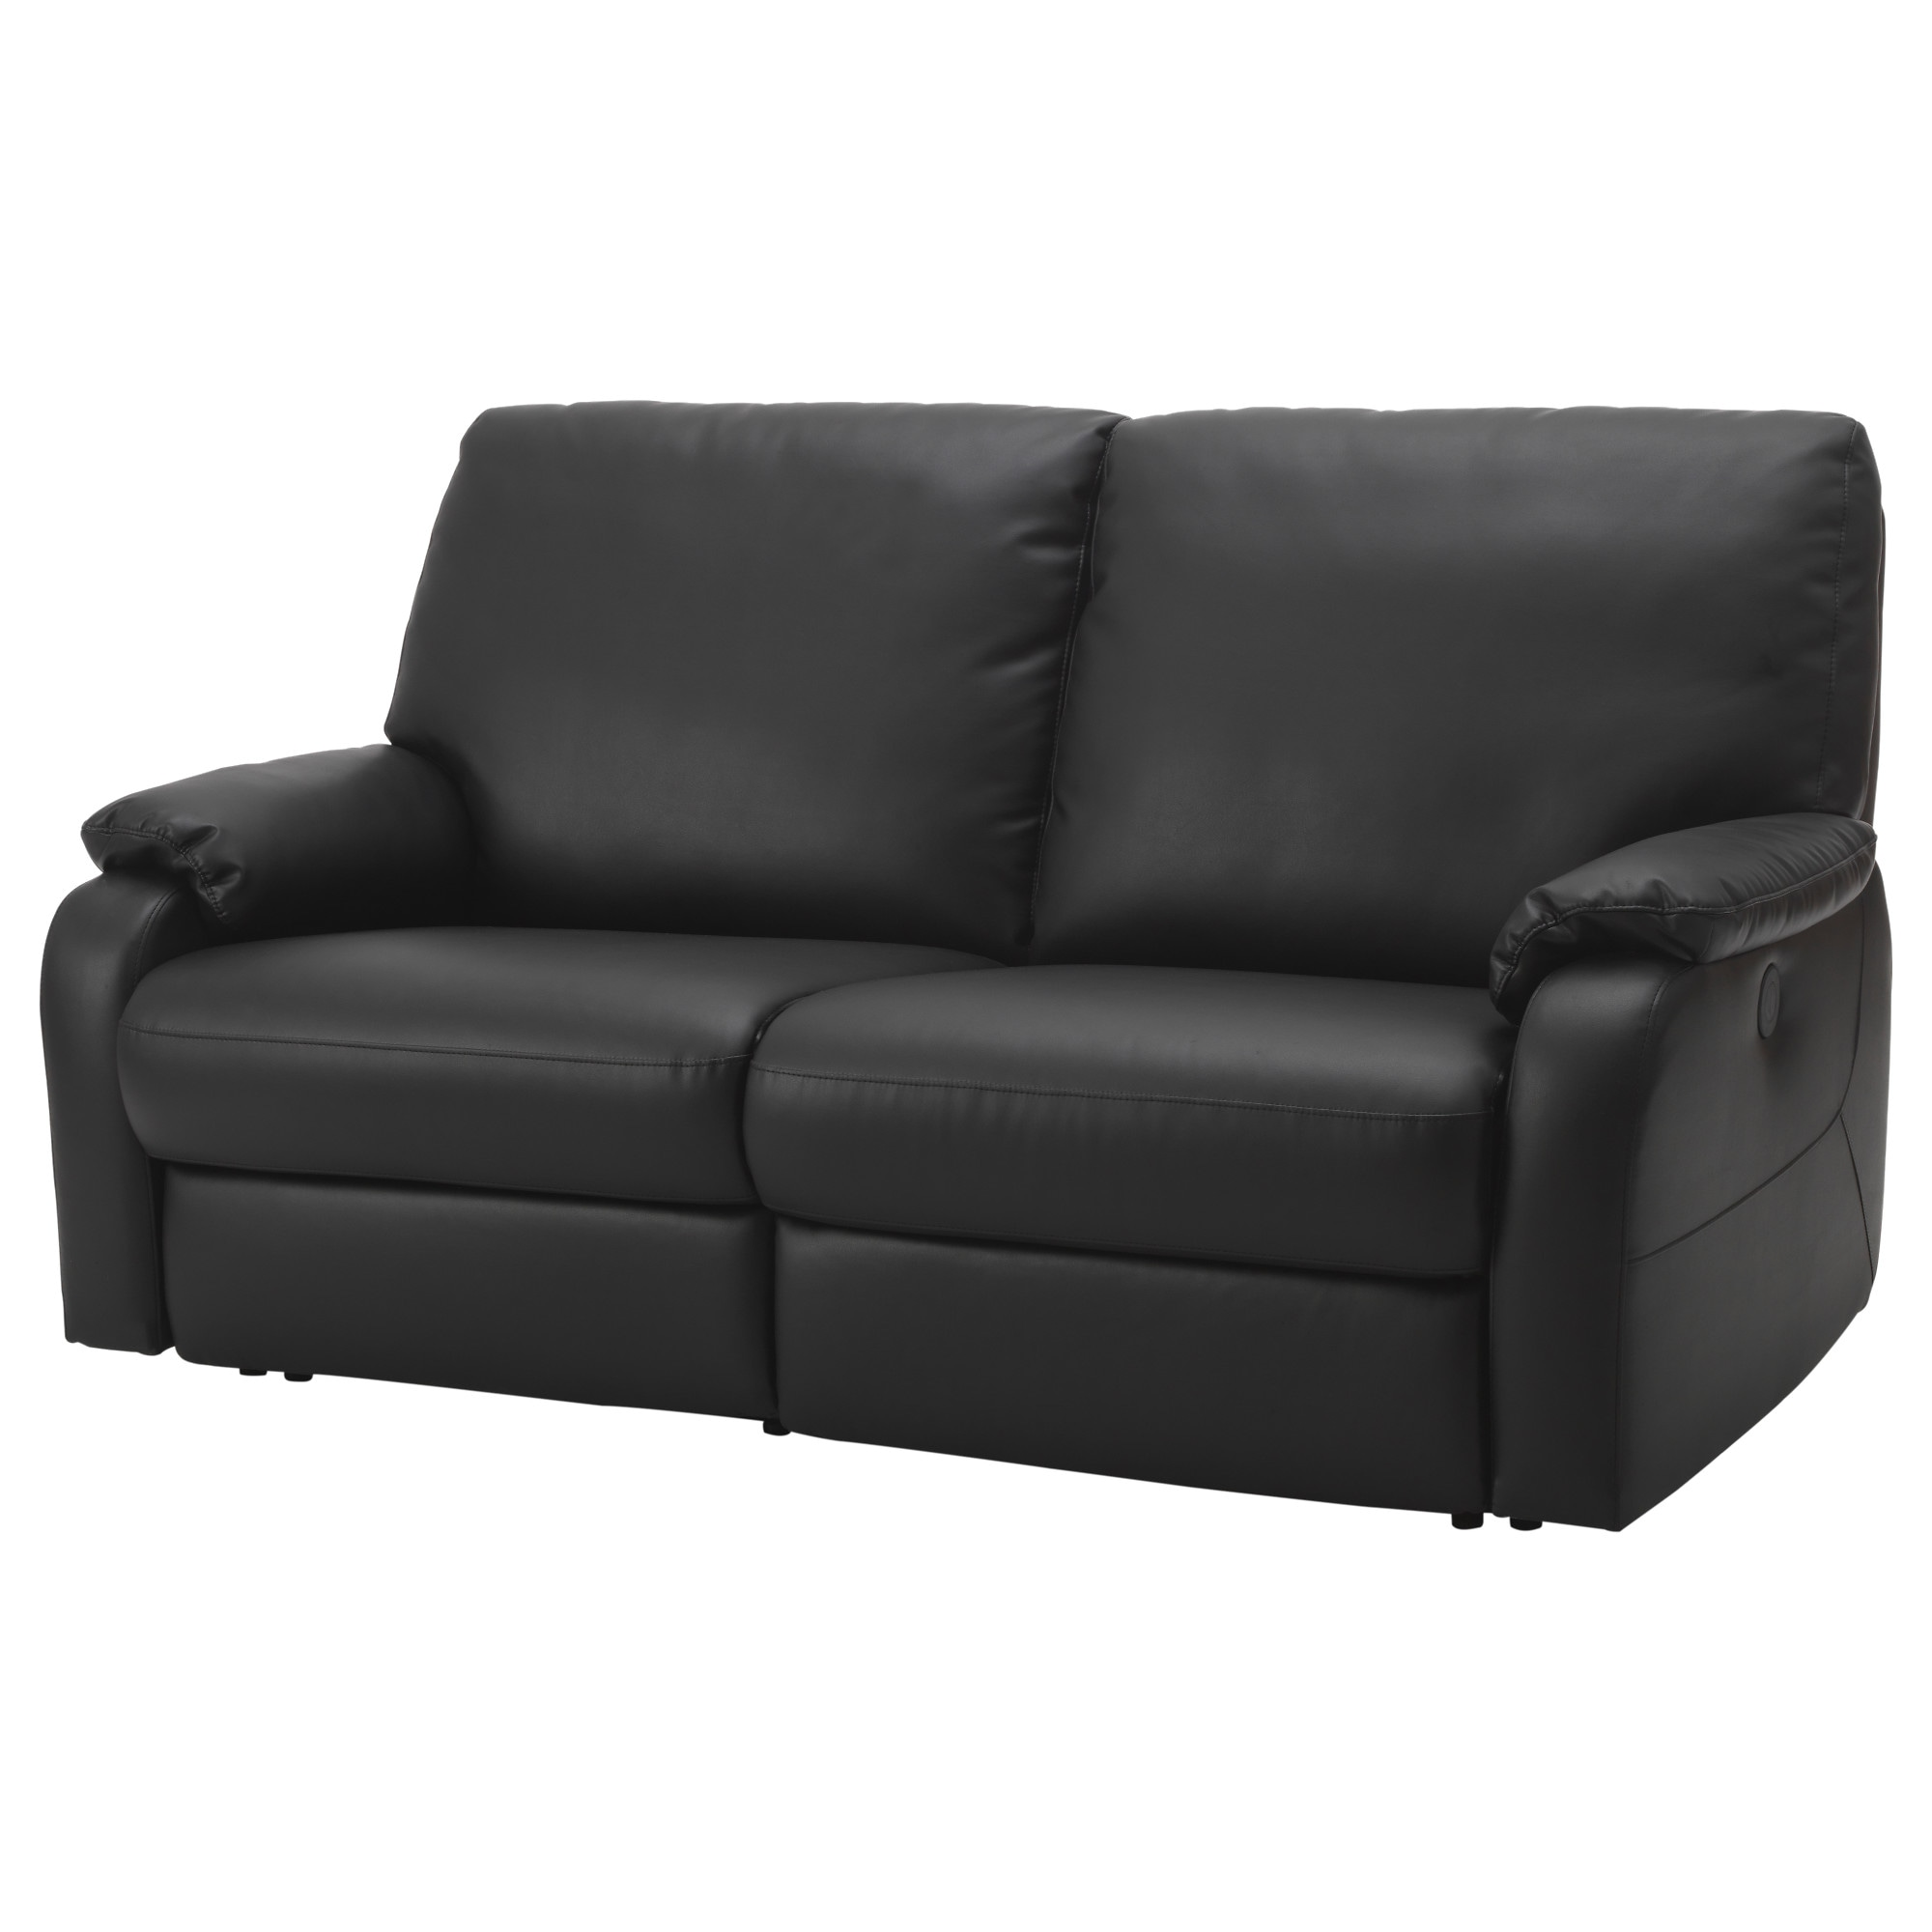 TOMBÄCK Sofa With Adjustable Seat/back, Kimstad Black Width: 72 7/8